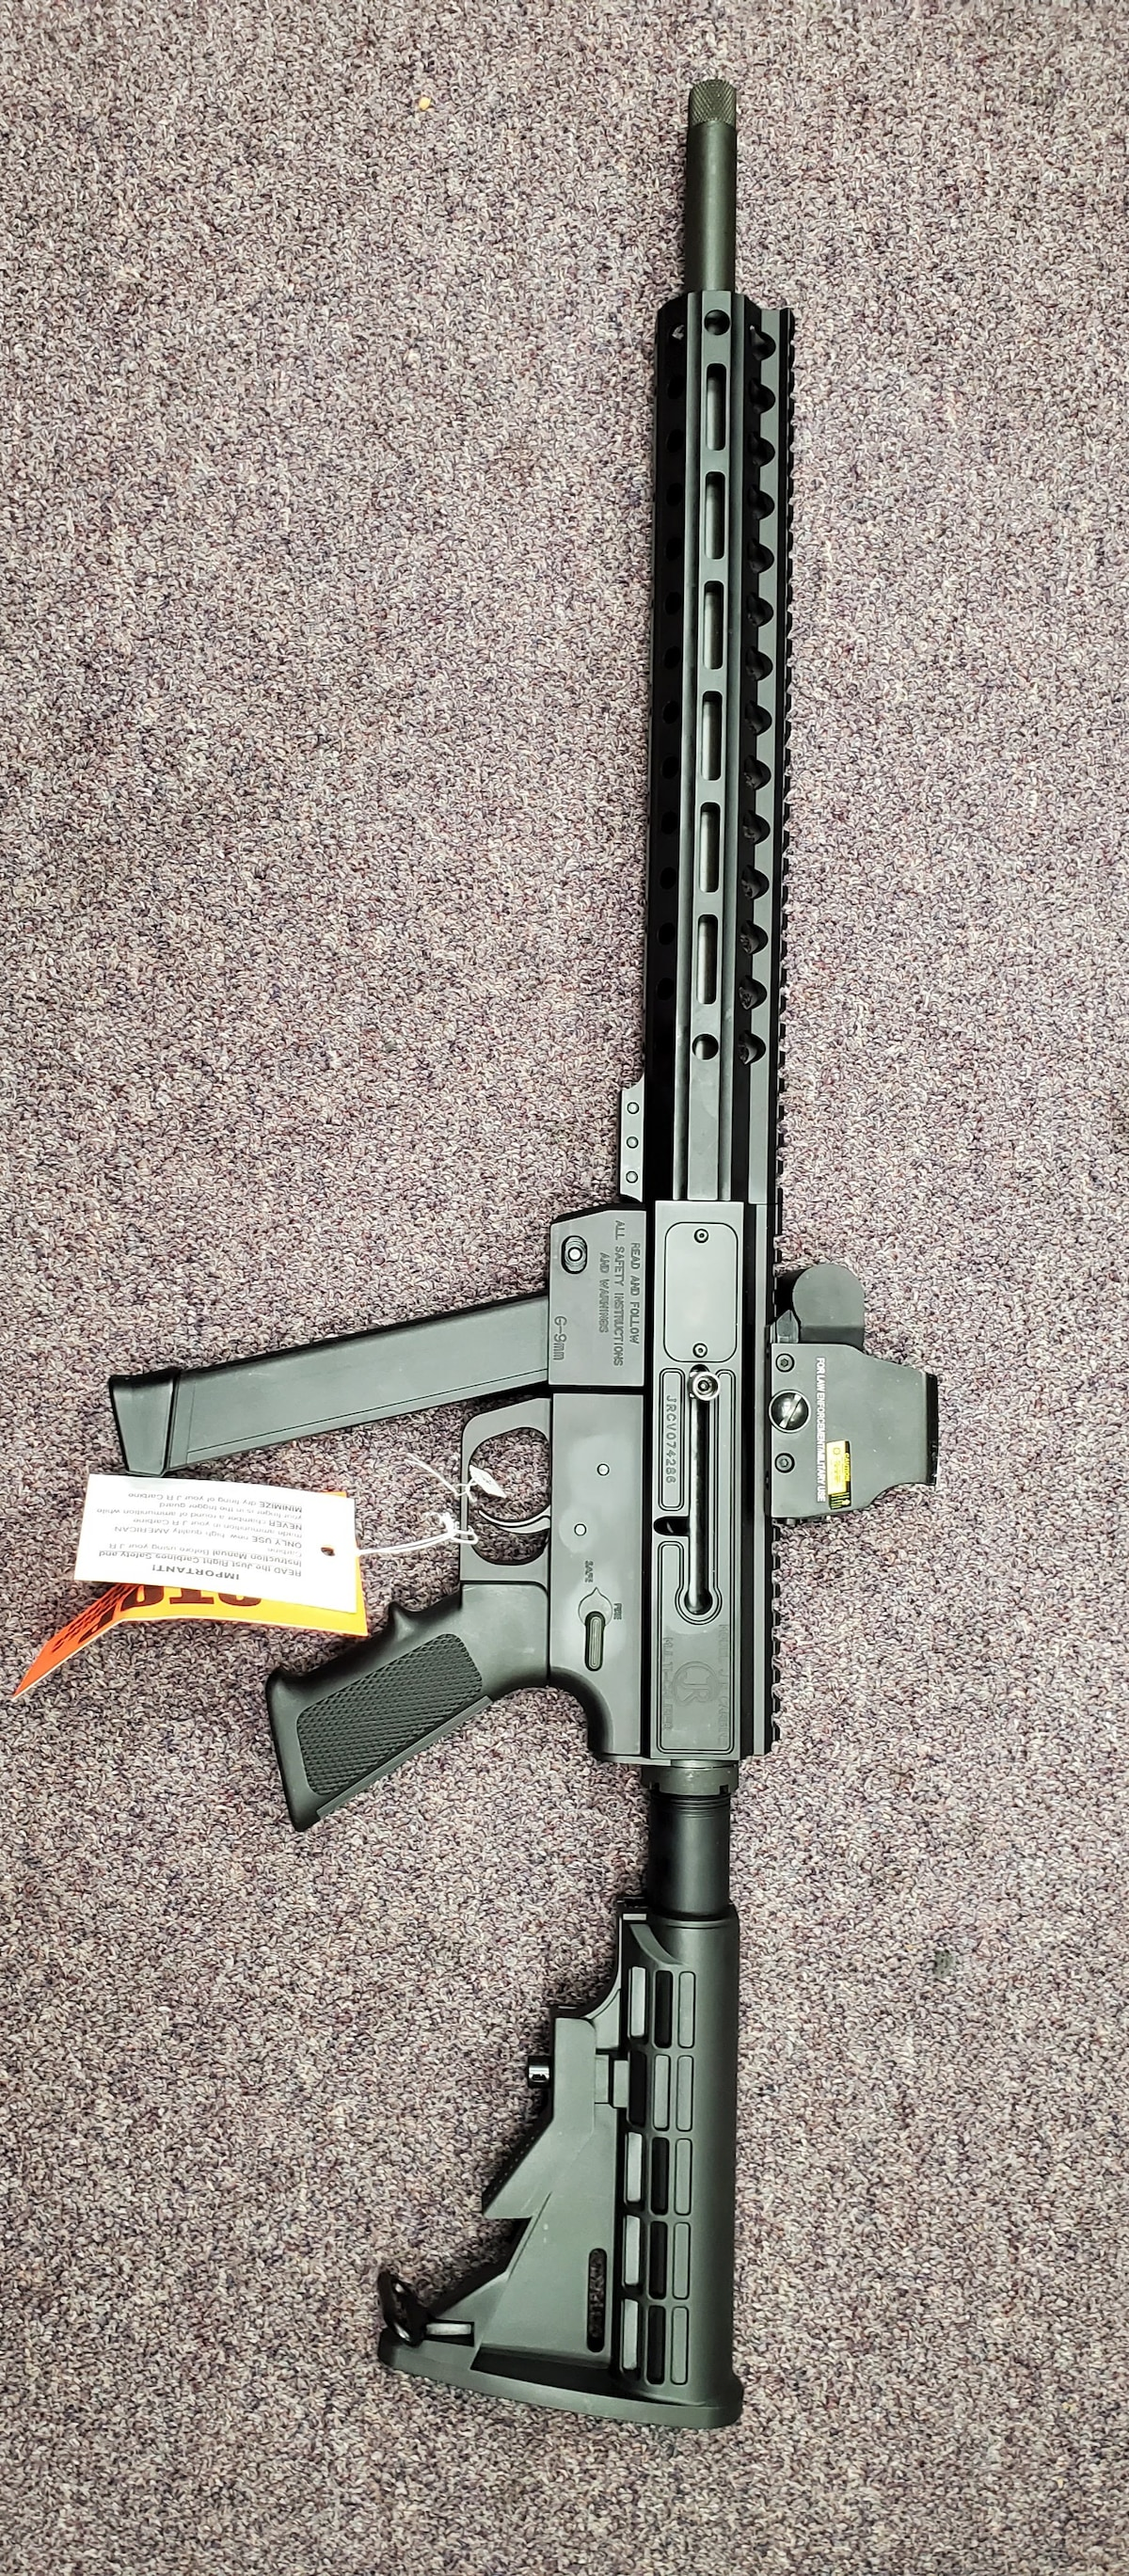 JUST RIGHT CARBINE Gen 3 9mm MLok Rail with red dot sight